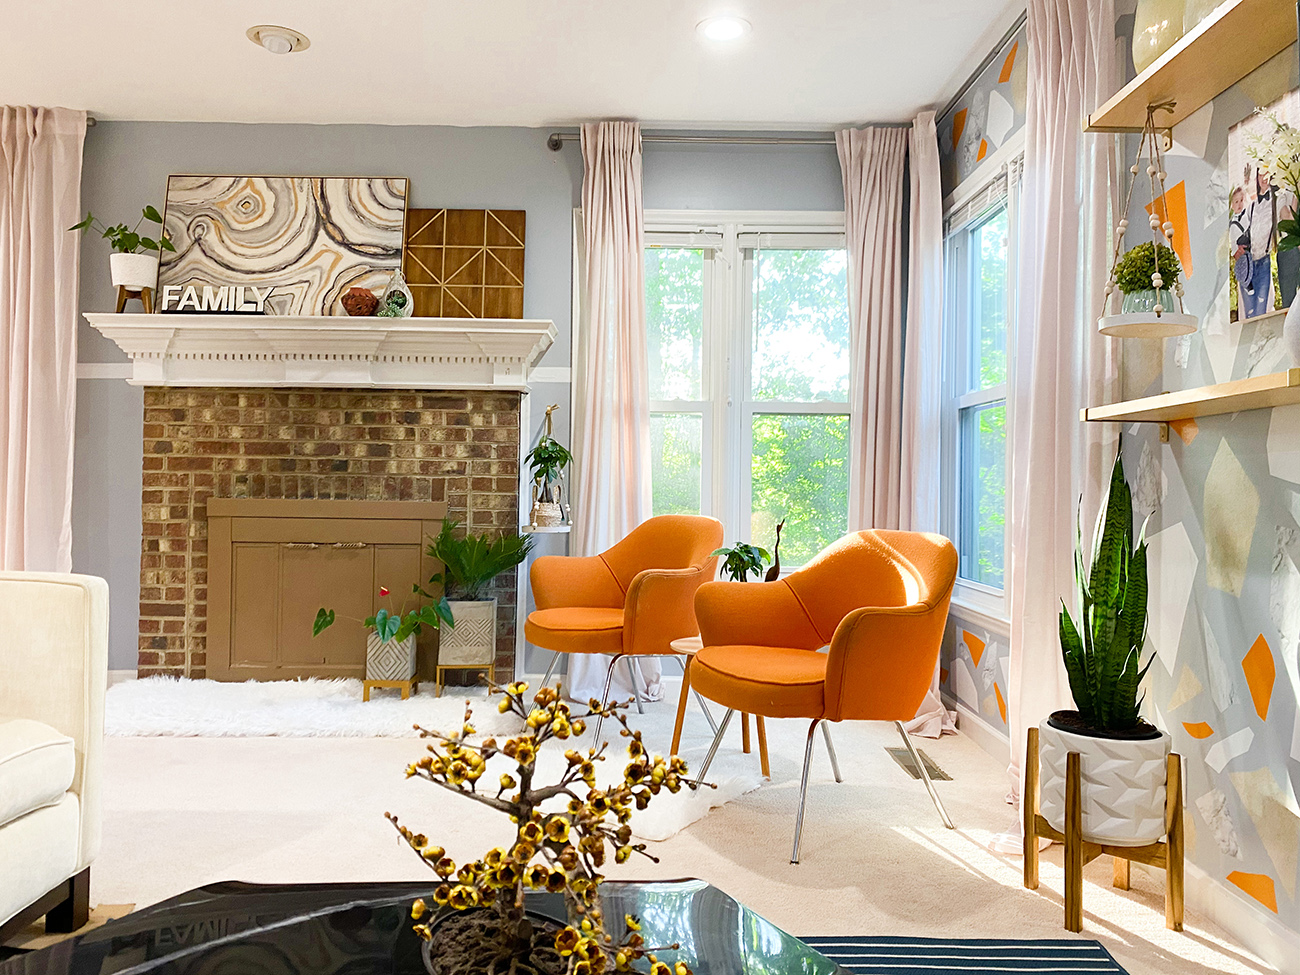 Give Your Home A New Look With 5 Mid Century Modern Diy Projects For 200 Or Less Charlotte Agenda